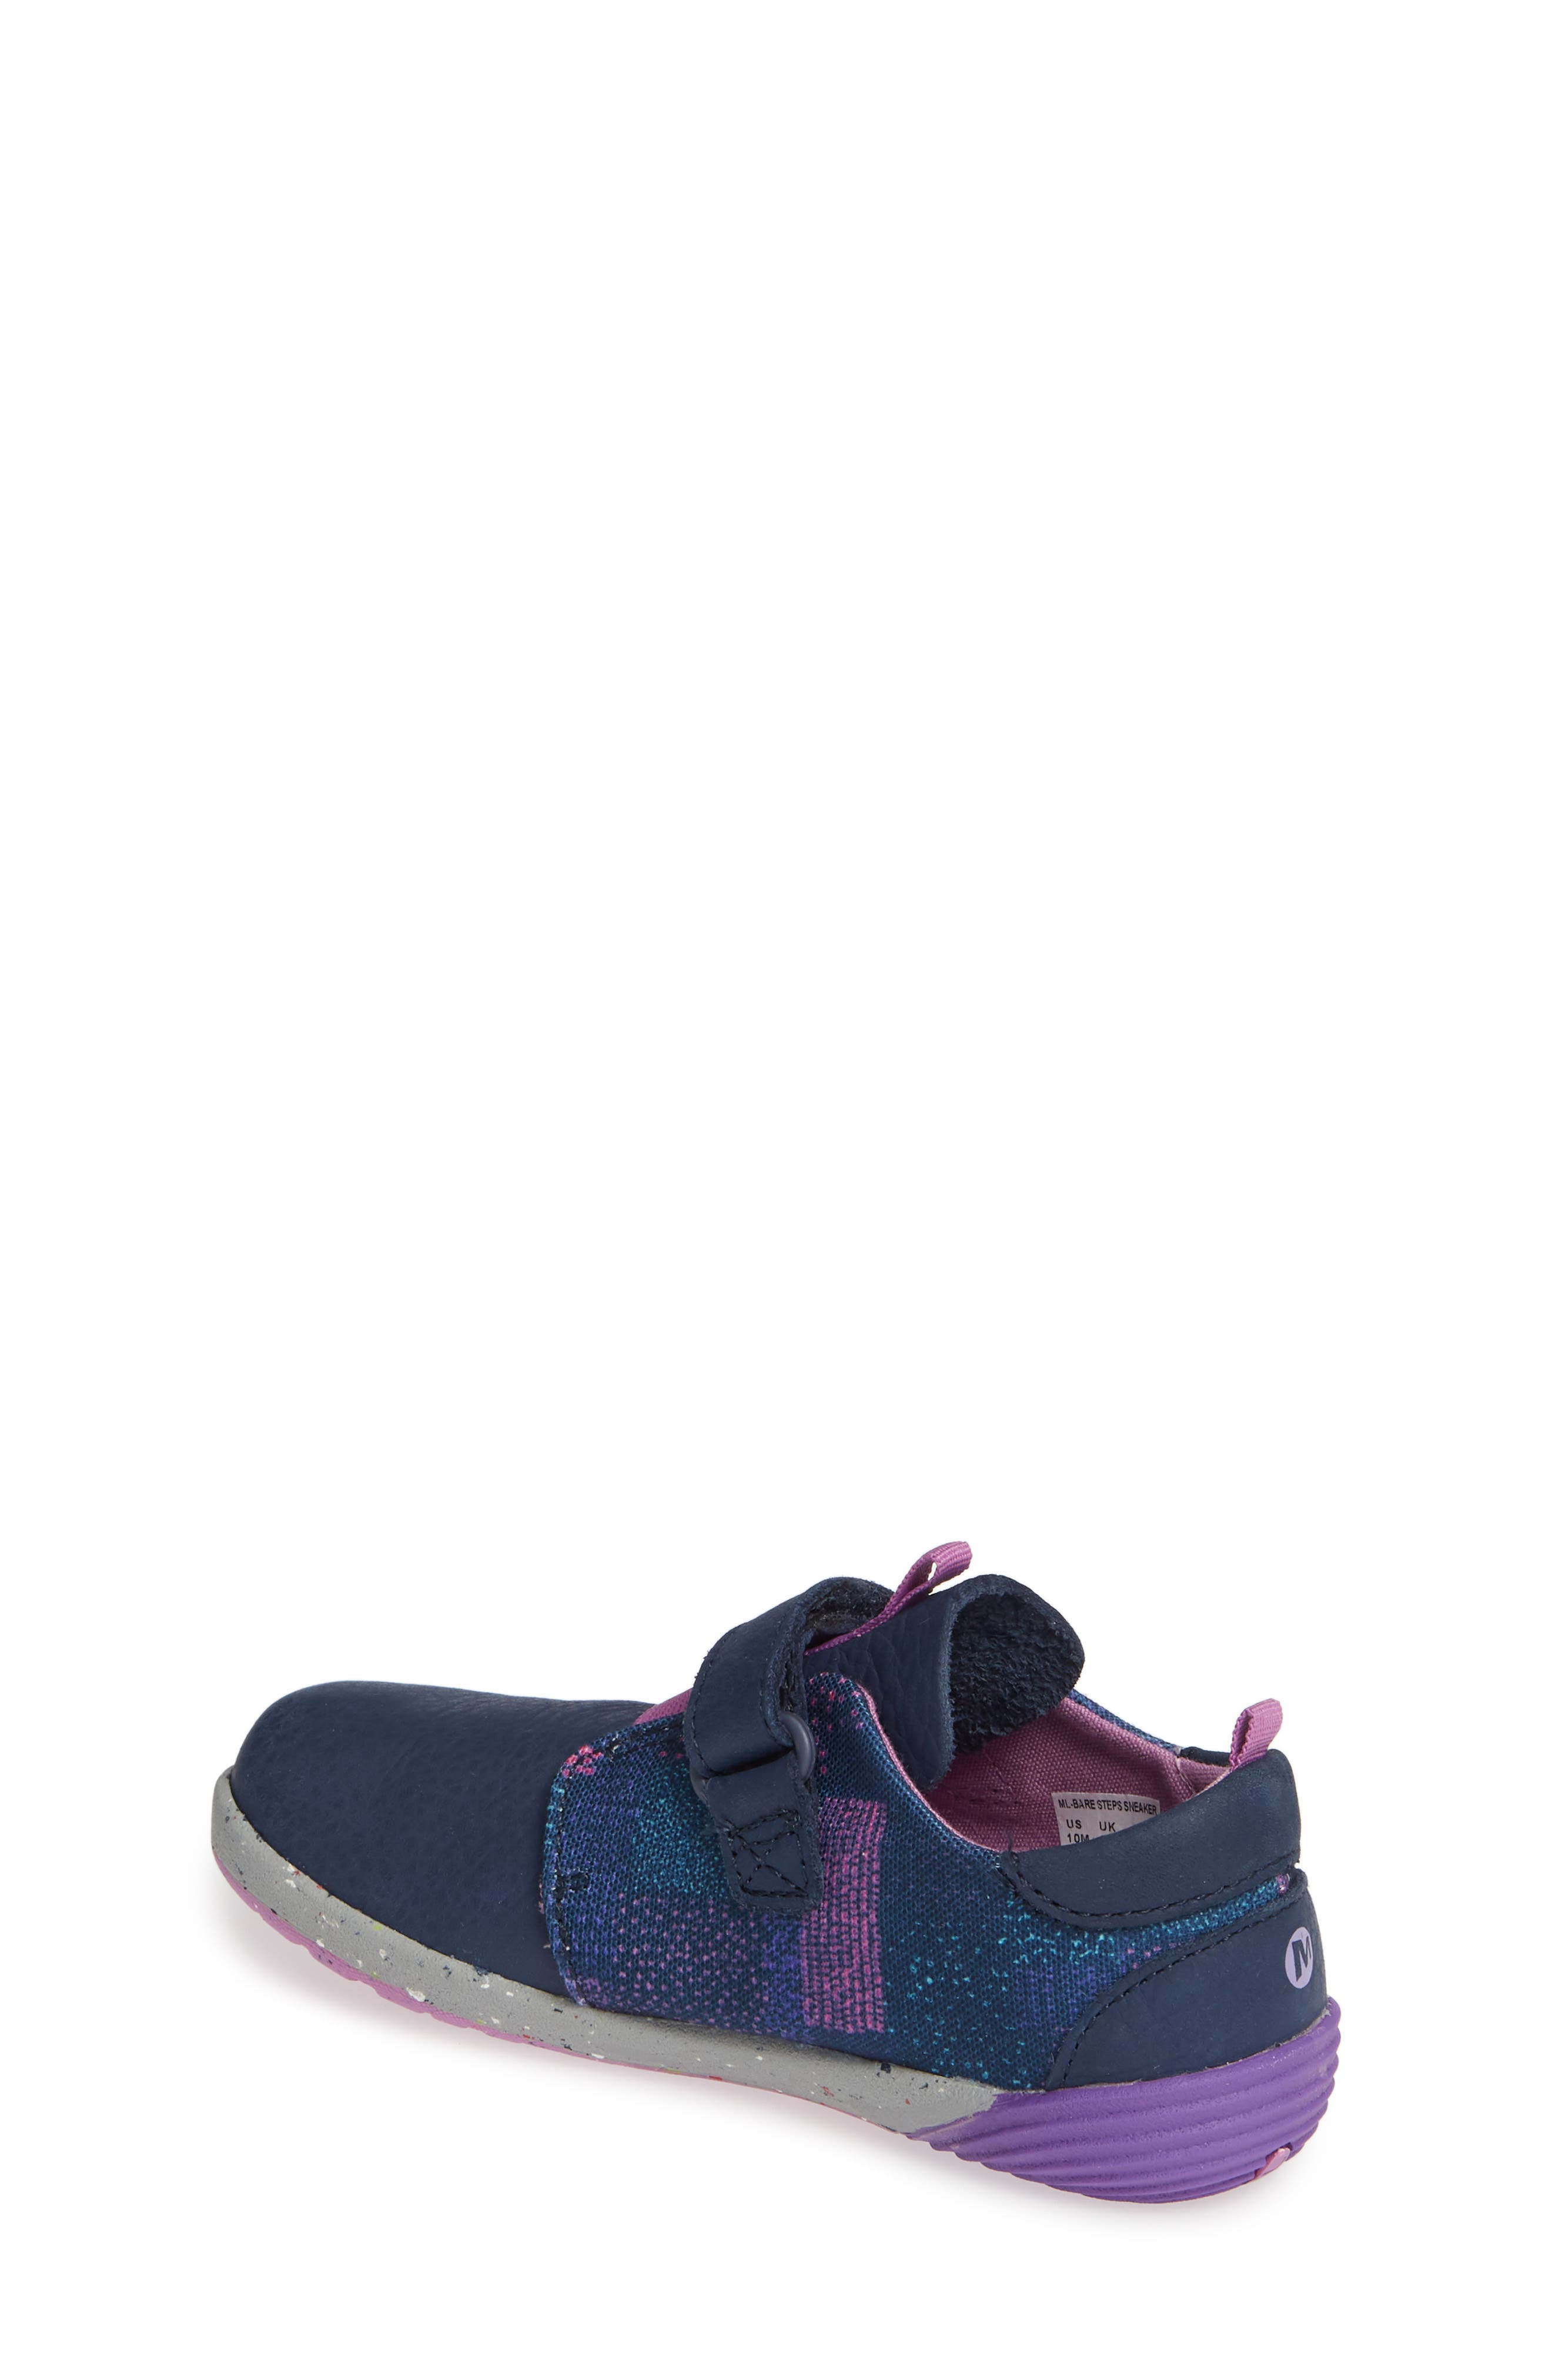 5bc24d2f27 Kids' Merrell Shoes | Nordstrom